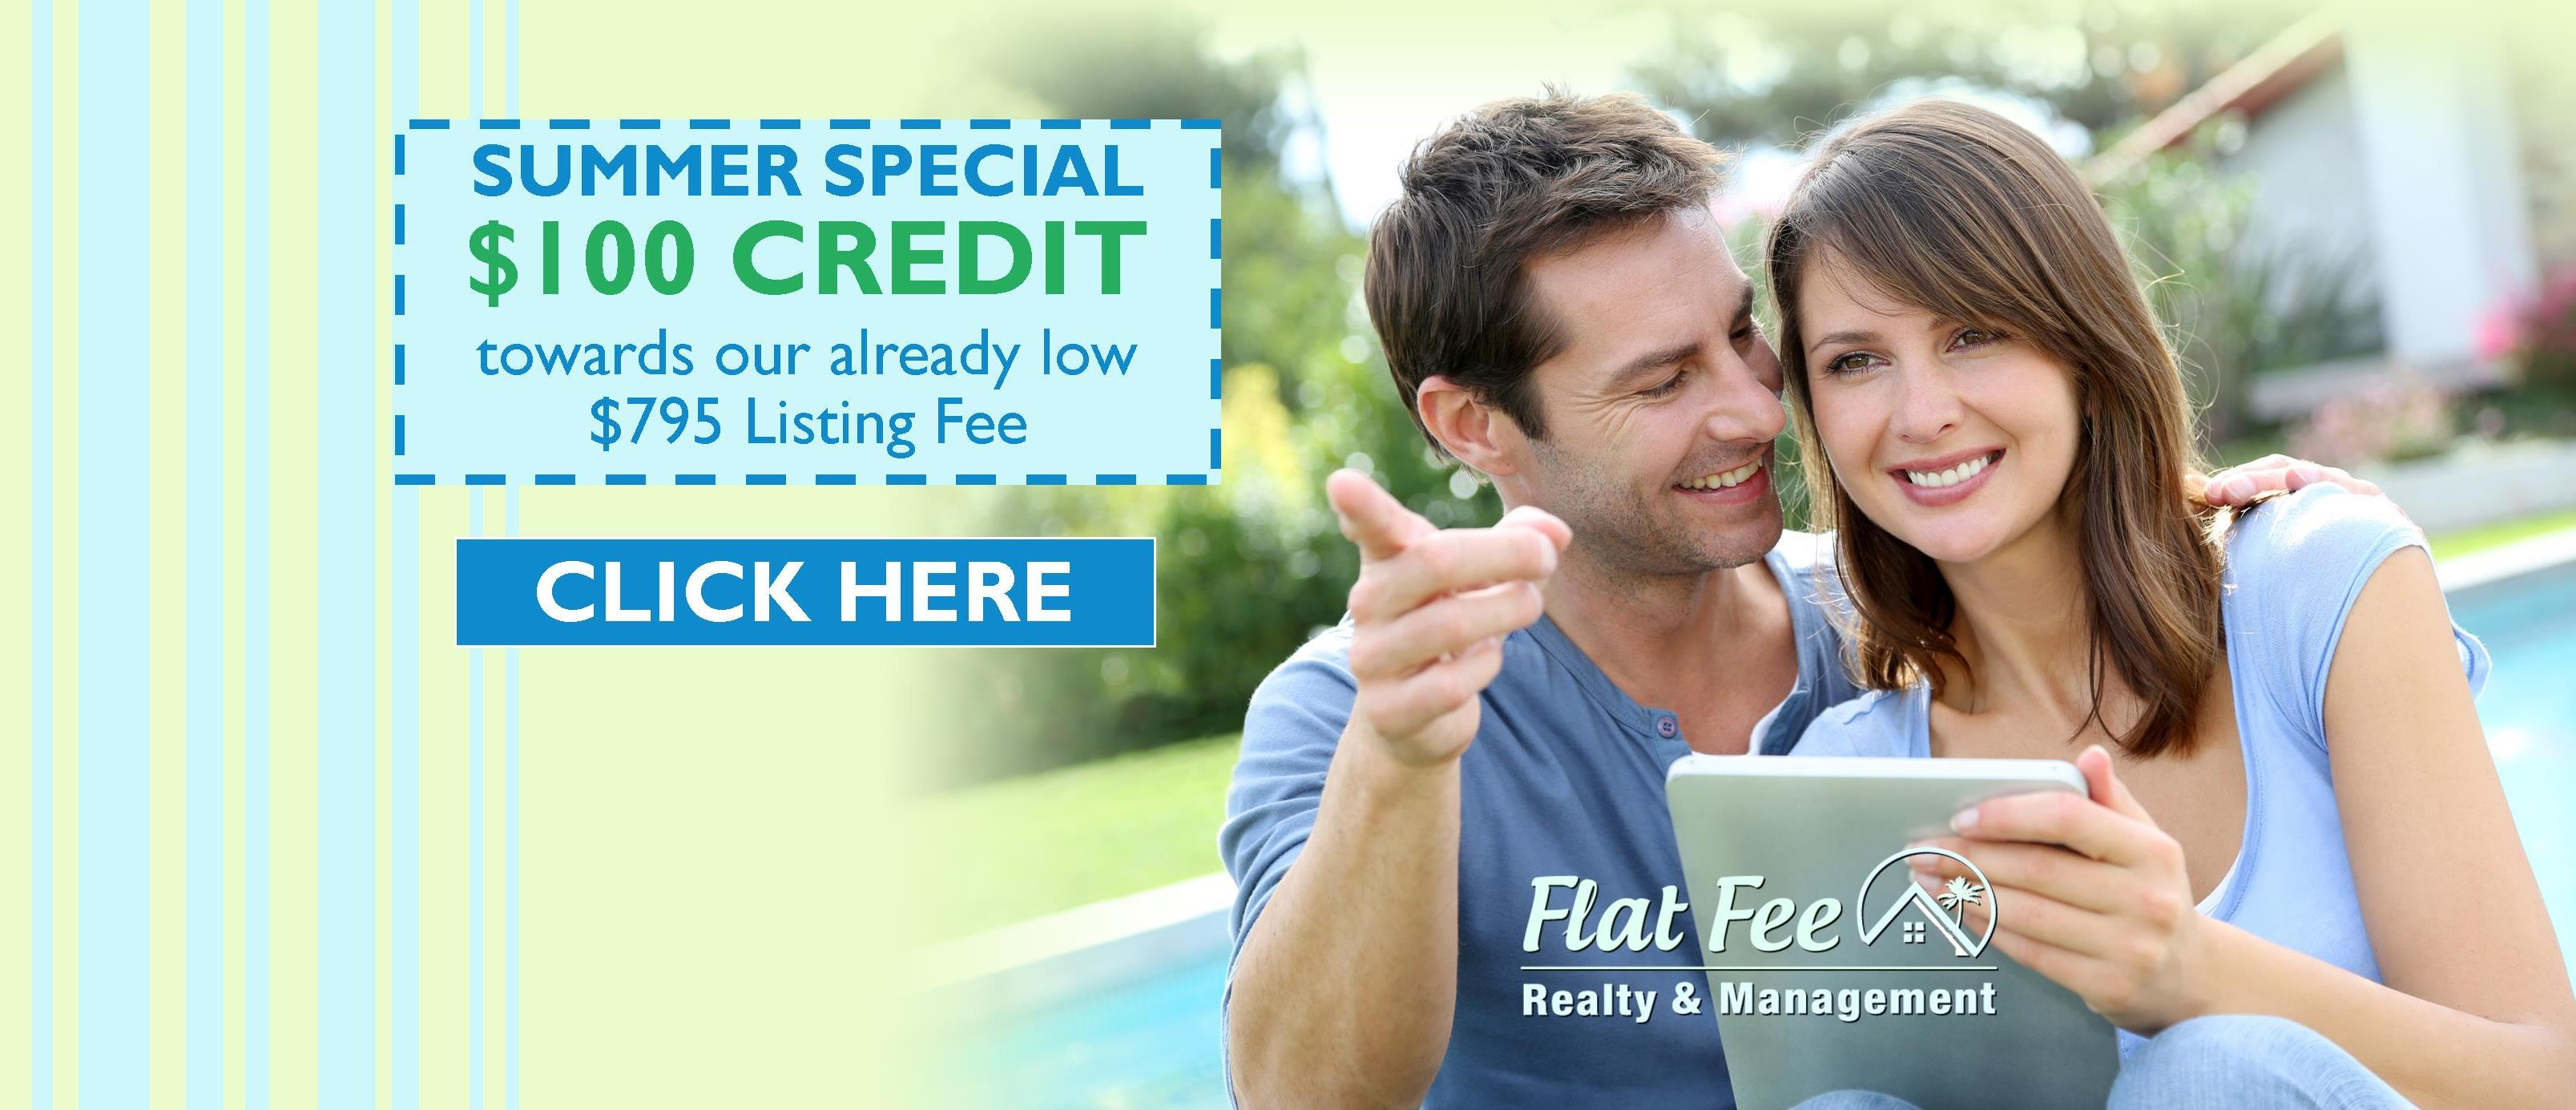 Flat Fee Realty & Management